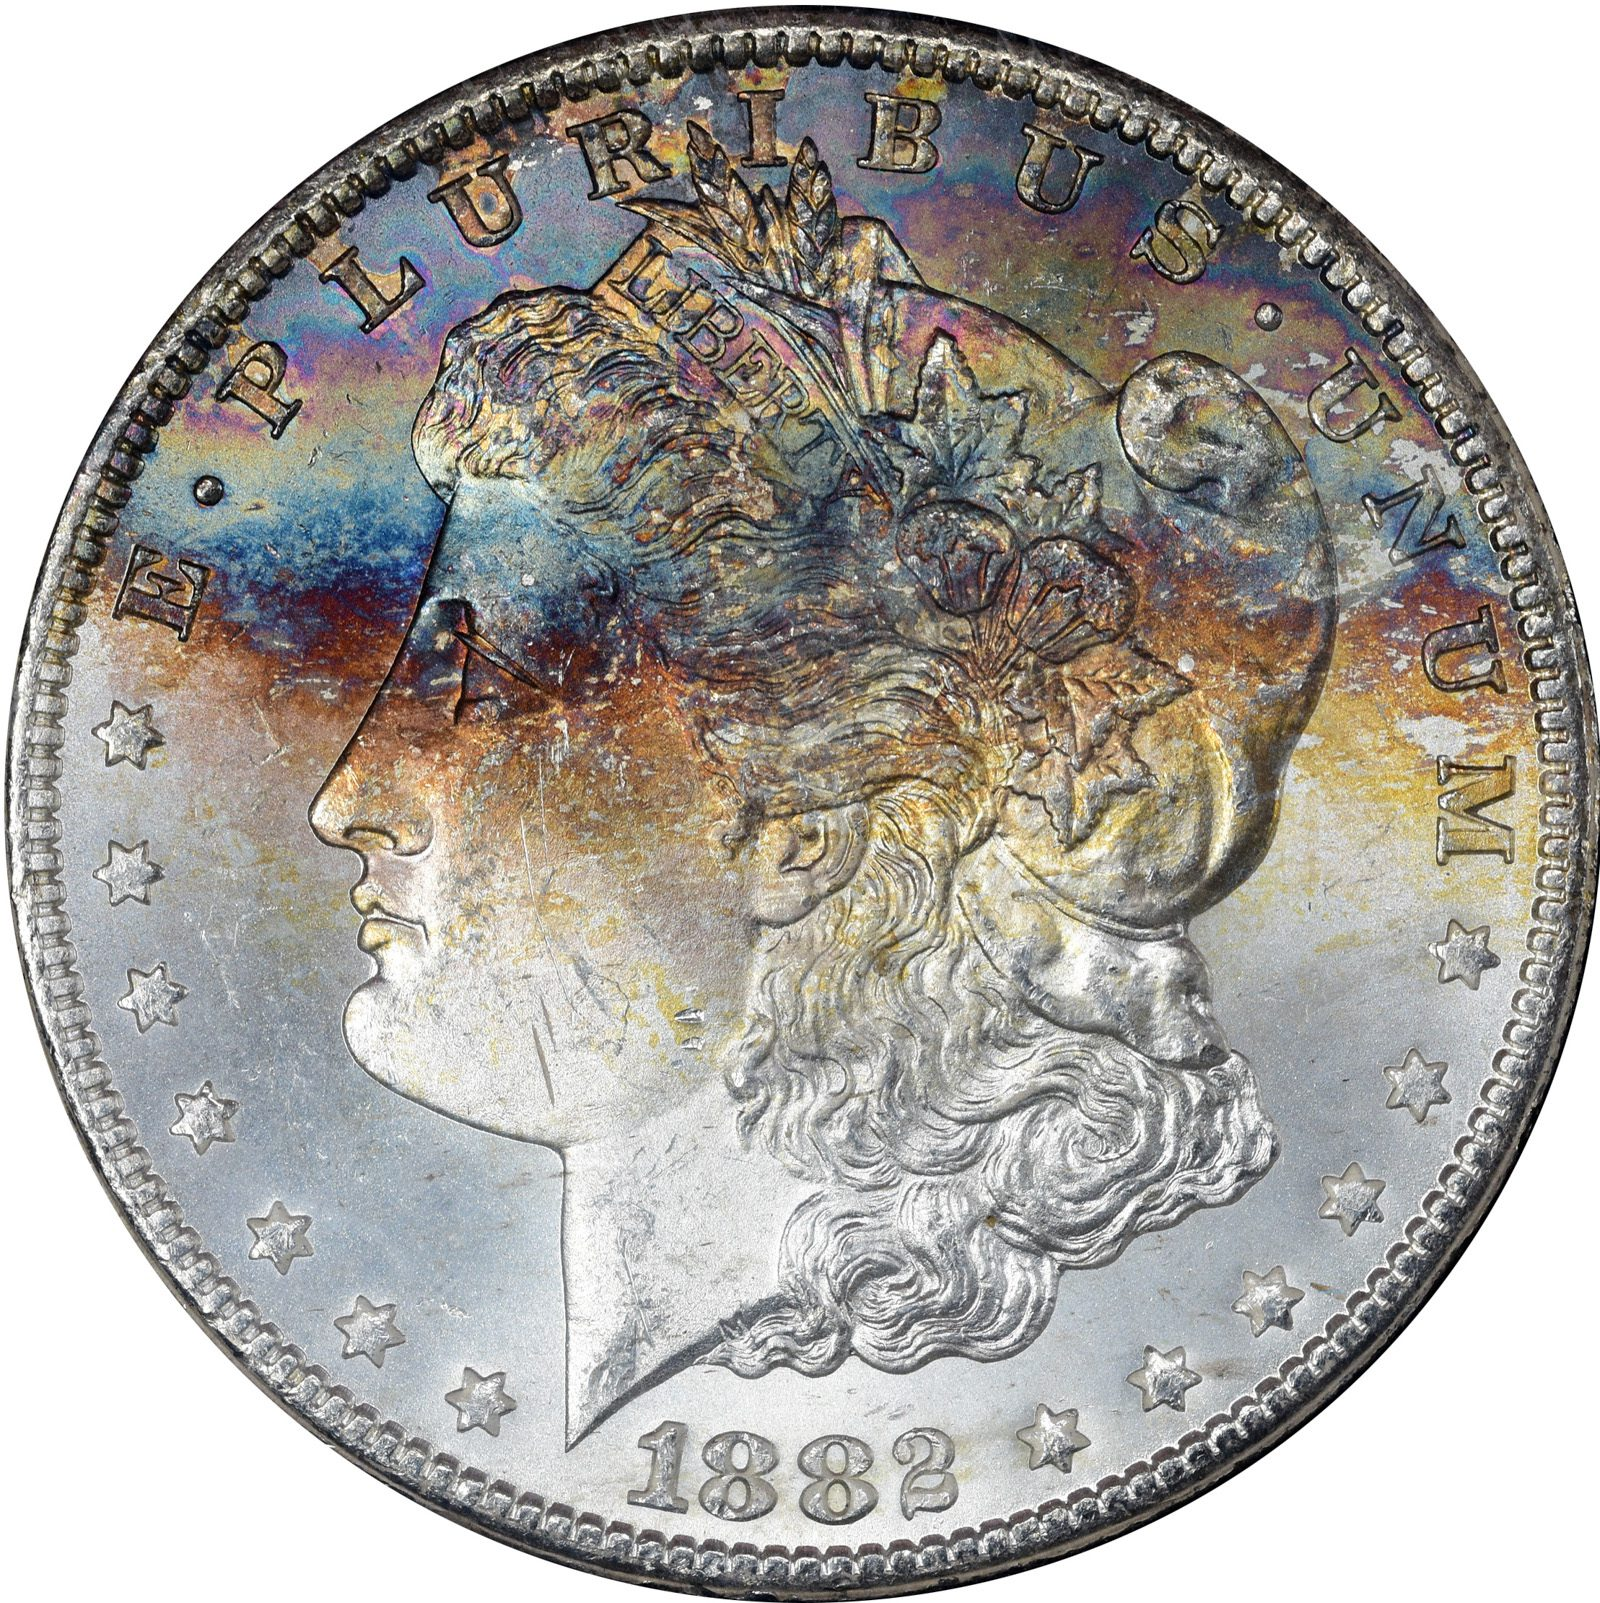 See More Coins At My Ebay Store At Http Stores Ebay Com Robscoins Buying And Selling Coins And Currency